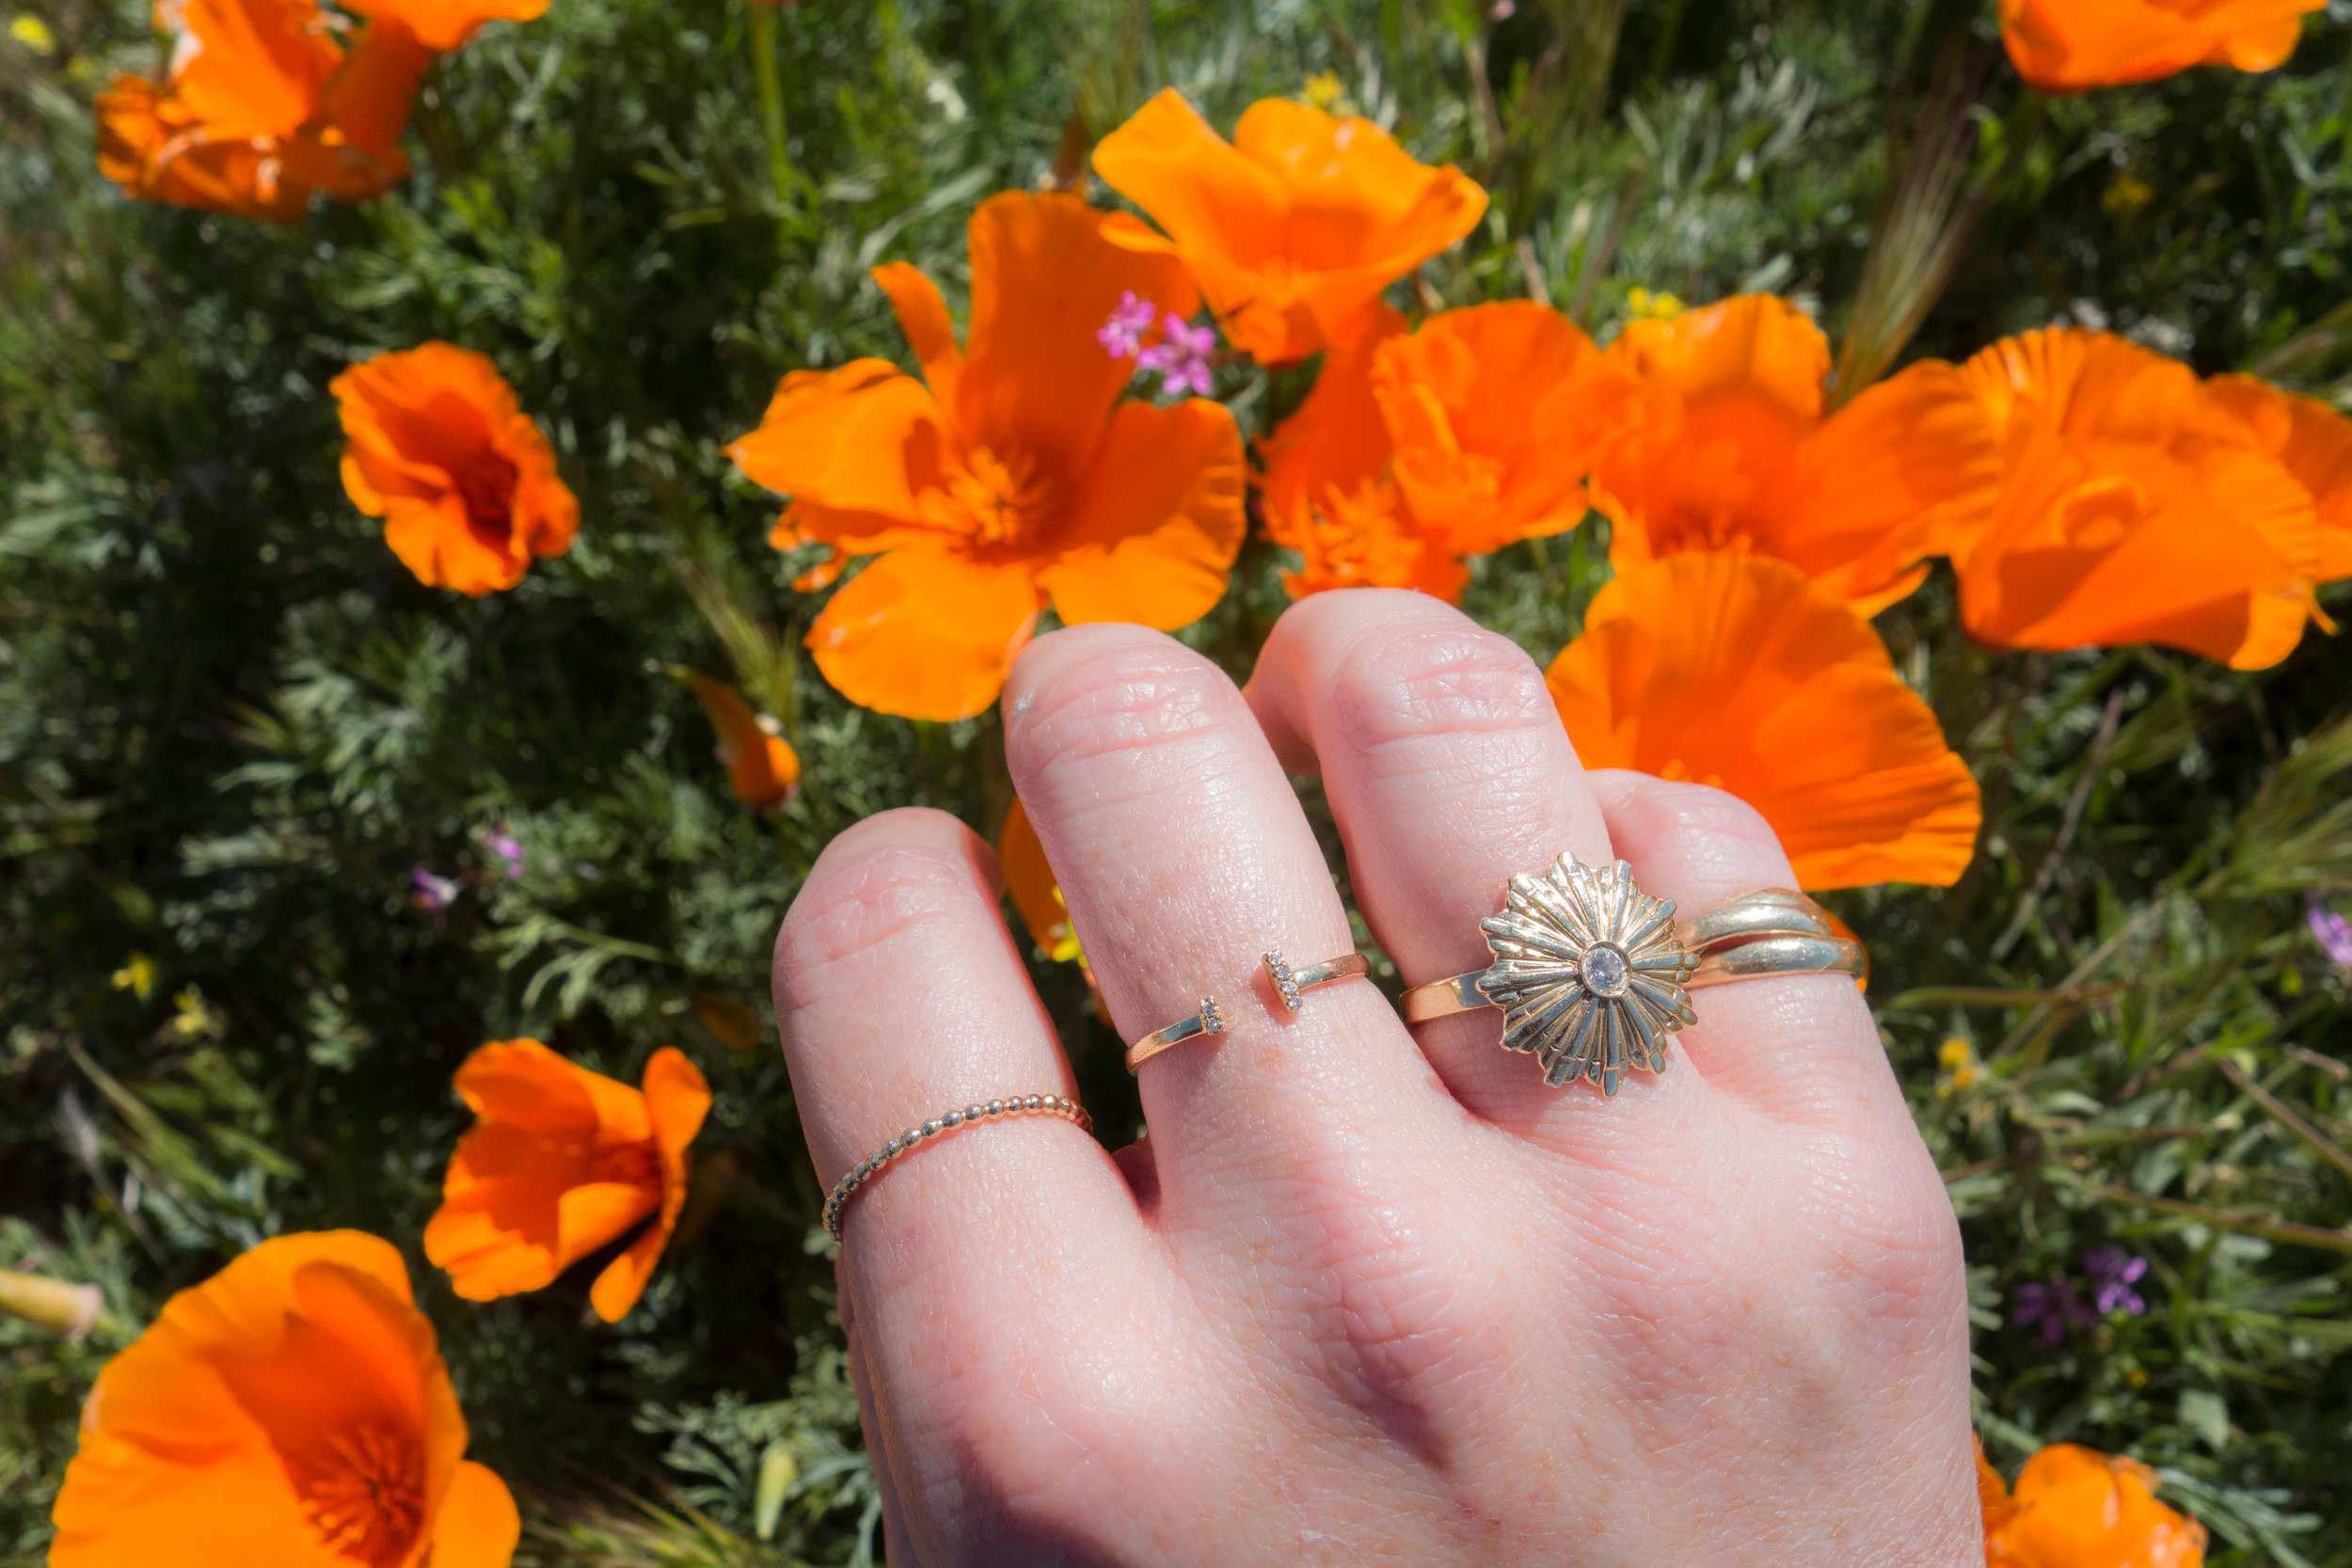 Had to take a ring selfie! Shown L-R my  Sidewell  ring,  Diamond Bar  ring, and my  Diamond starburst  ring.